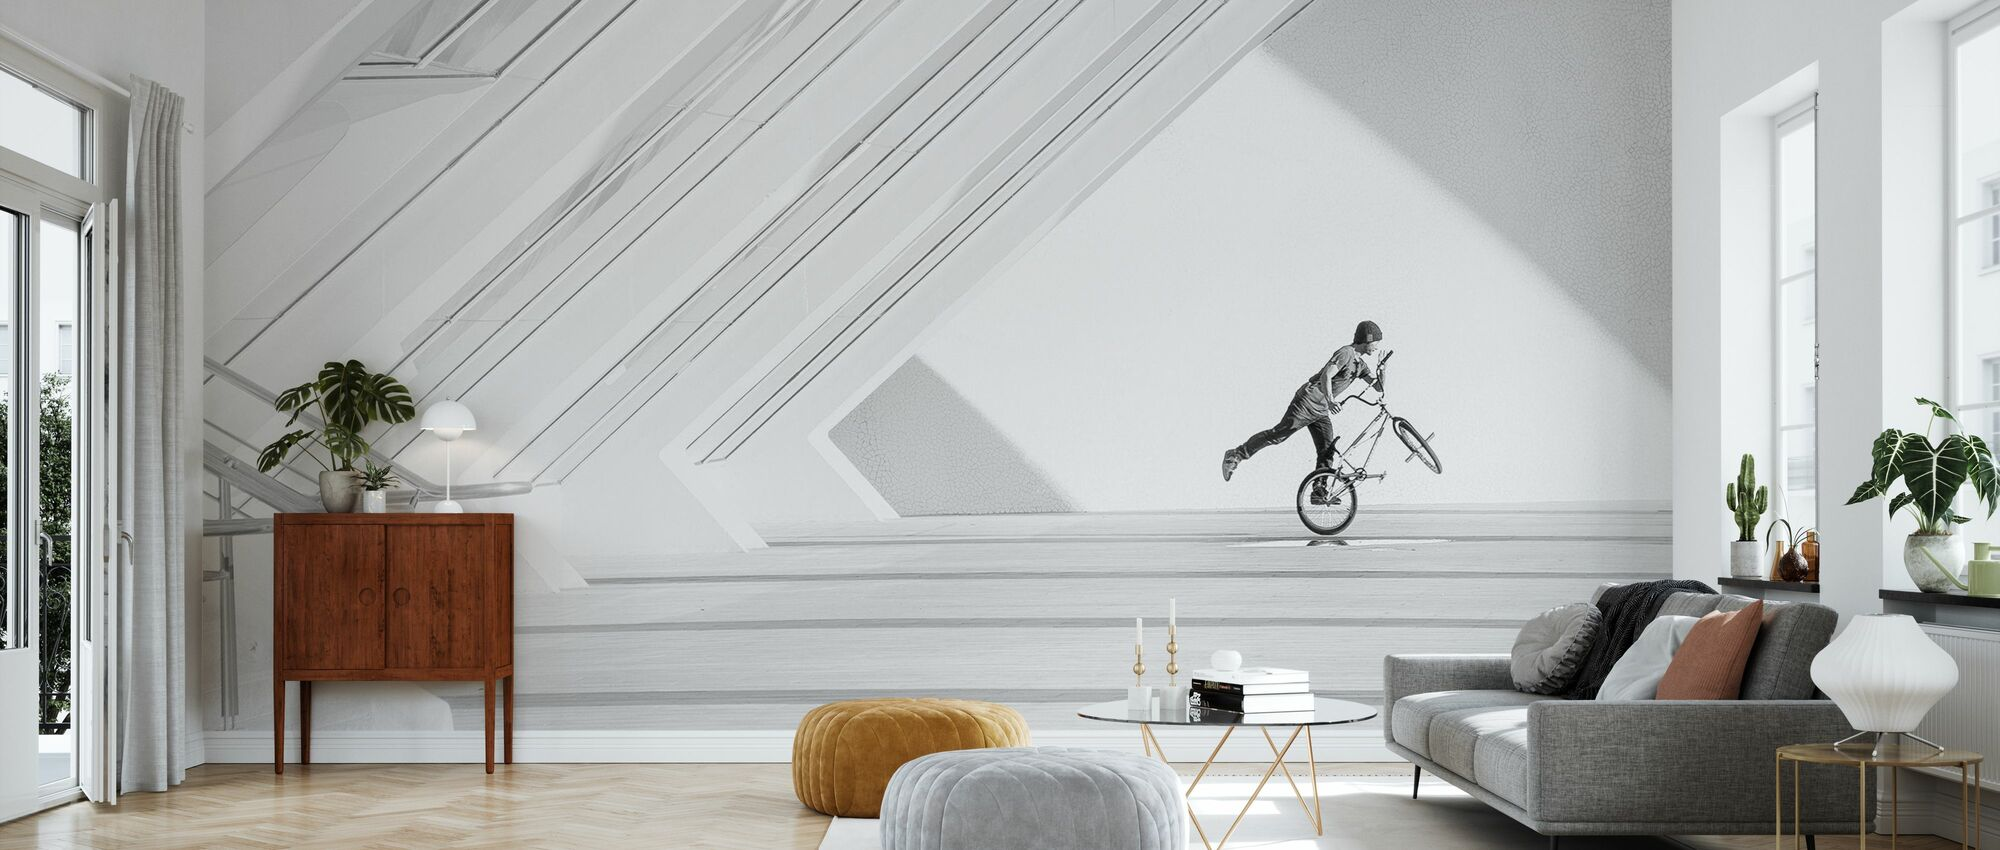 Bicycle Art - Wallpaper - Living Room